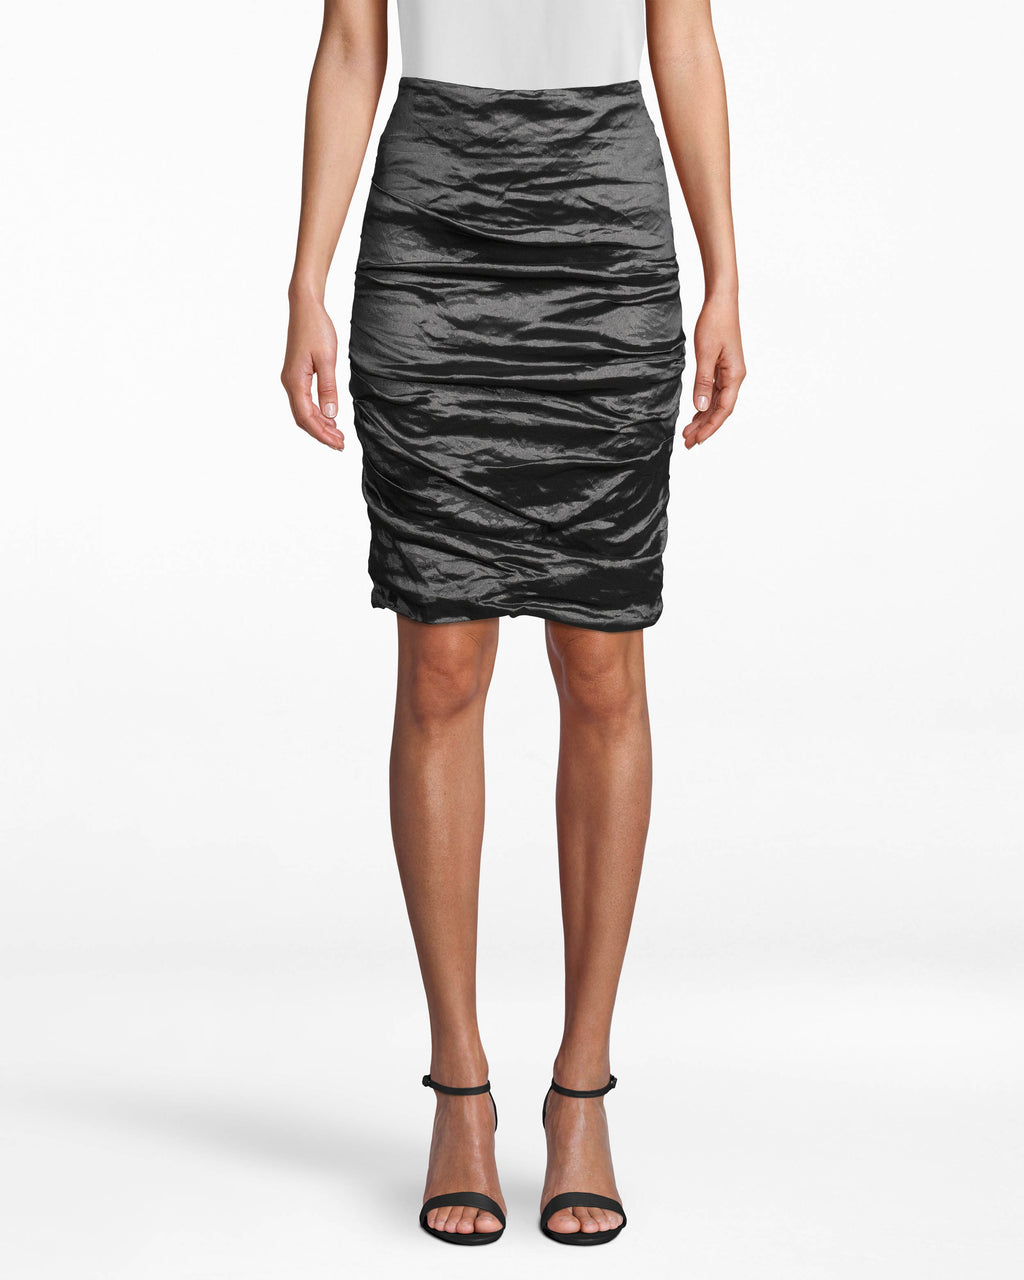 BJ0841 - SANDY TECHNO METAL SKIRT - bottoms - skirts - The unique fabric gathers (so intrinsic to our Techno Metal) on this body-fitting skirt elevates any workwear outfit. Pair back with a Techno Metal top of your choice. Exposed back zipper for closure.